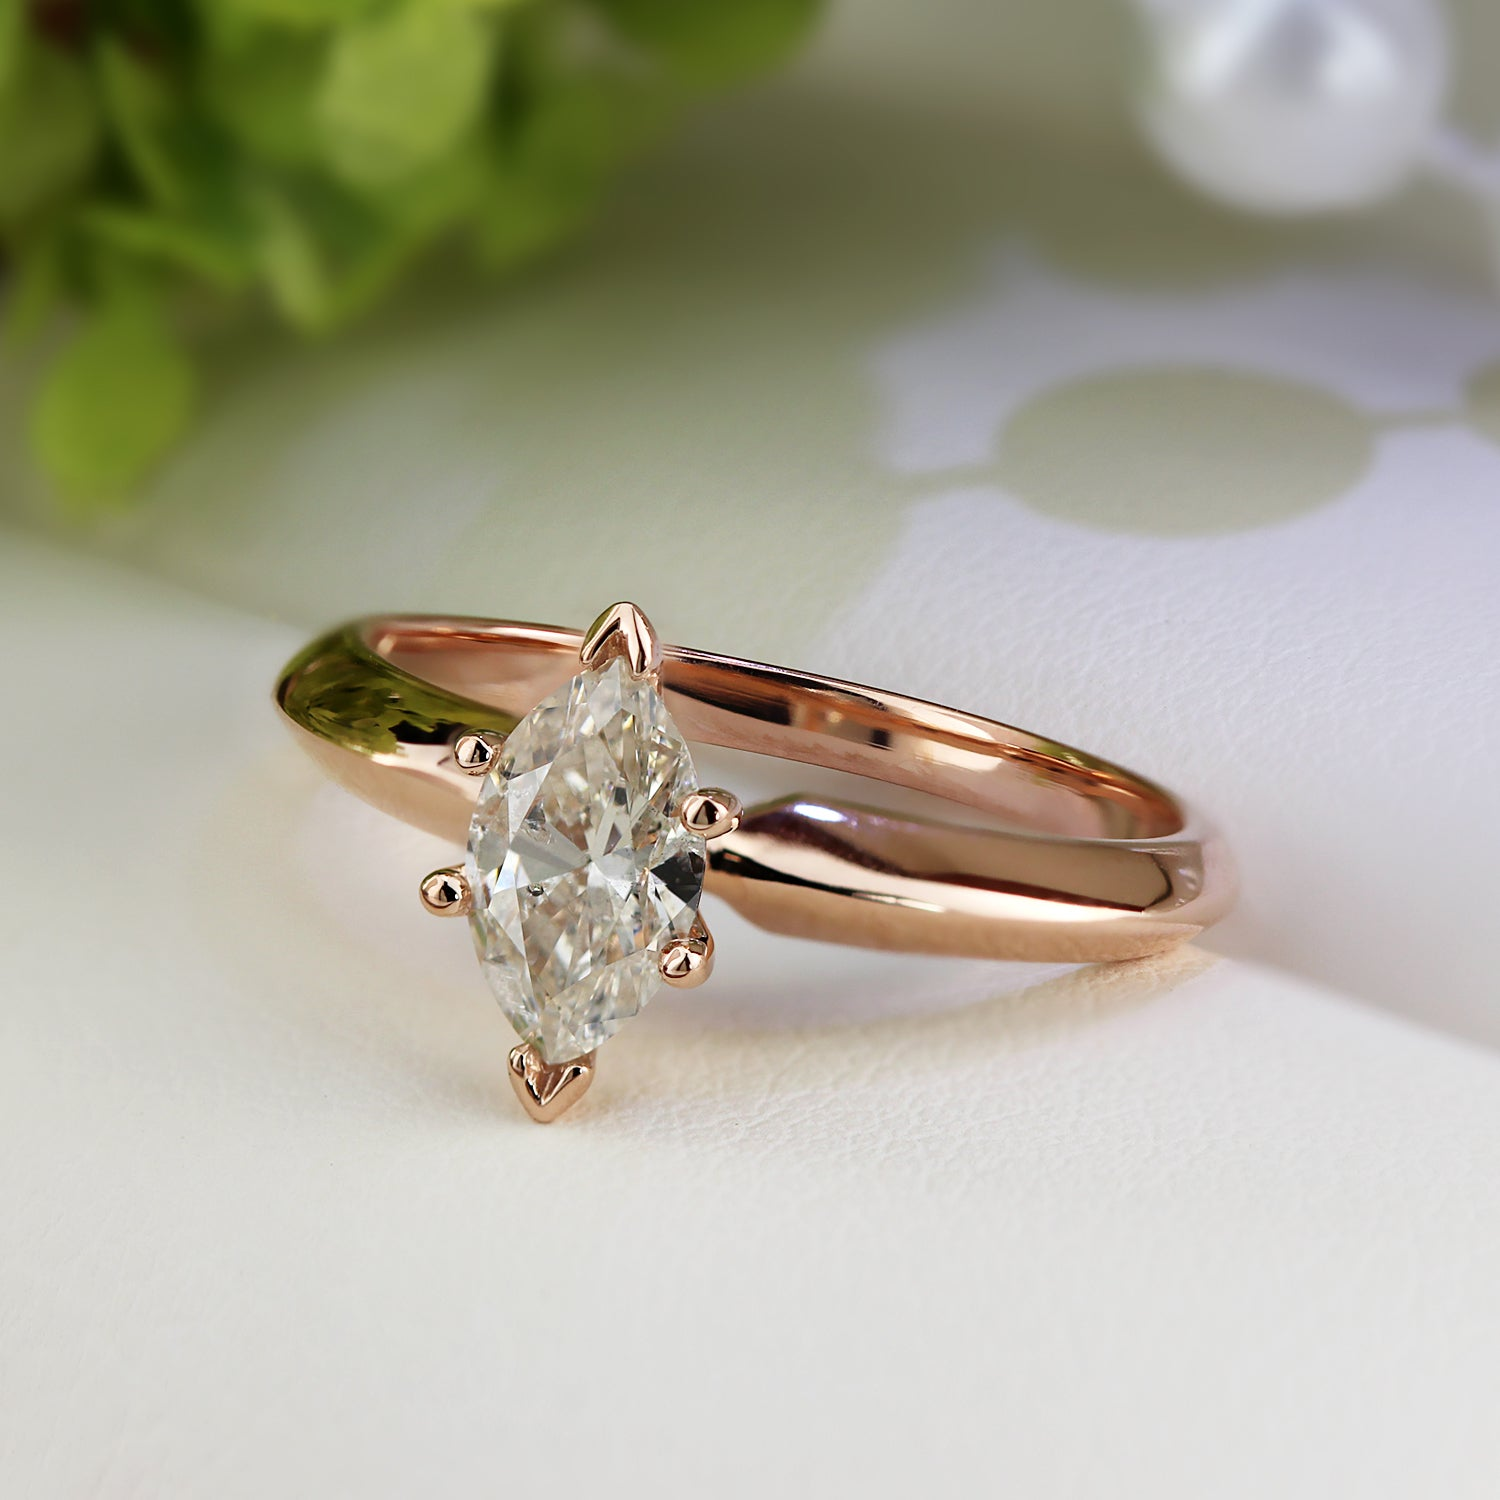 ring rings cf co jewellery tiffany round type products diamond vendor solitaire engagement oliver